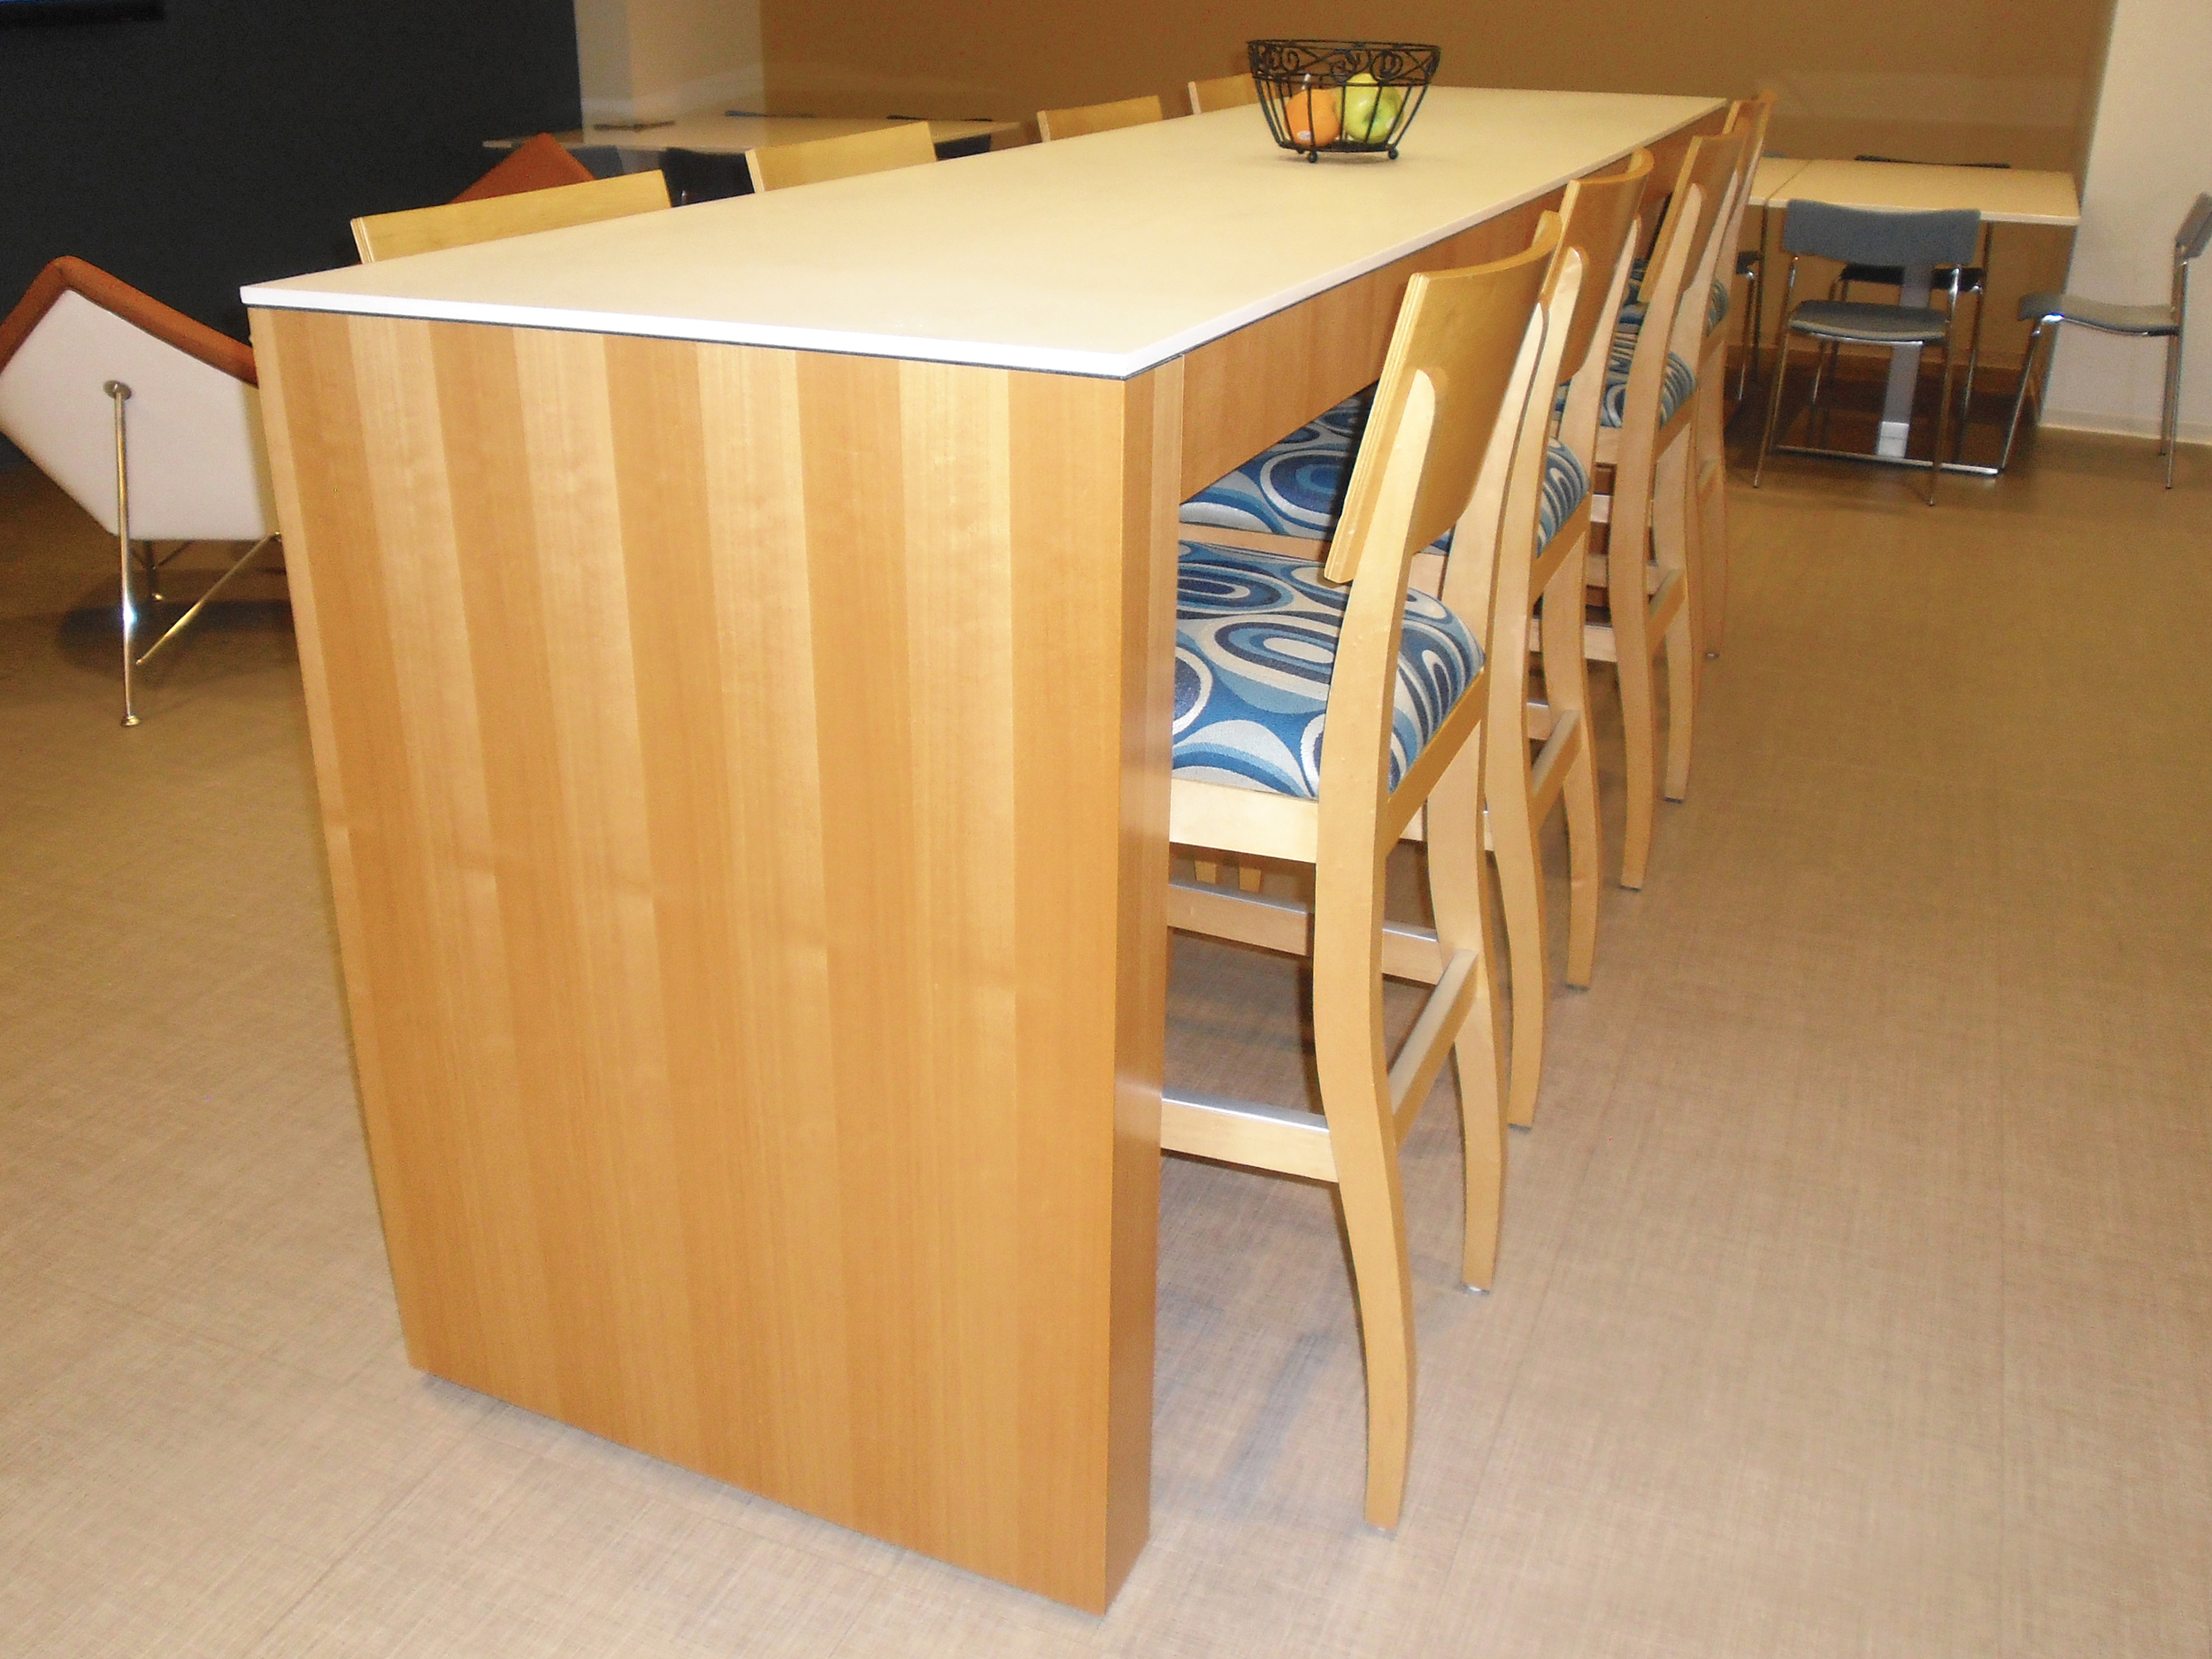 Tall Cafe Bar Table_Veneer and Solid Surface_01.jpg